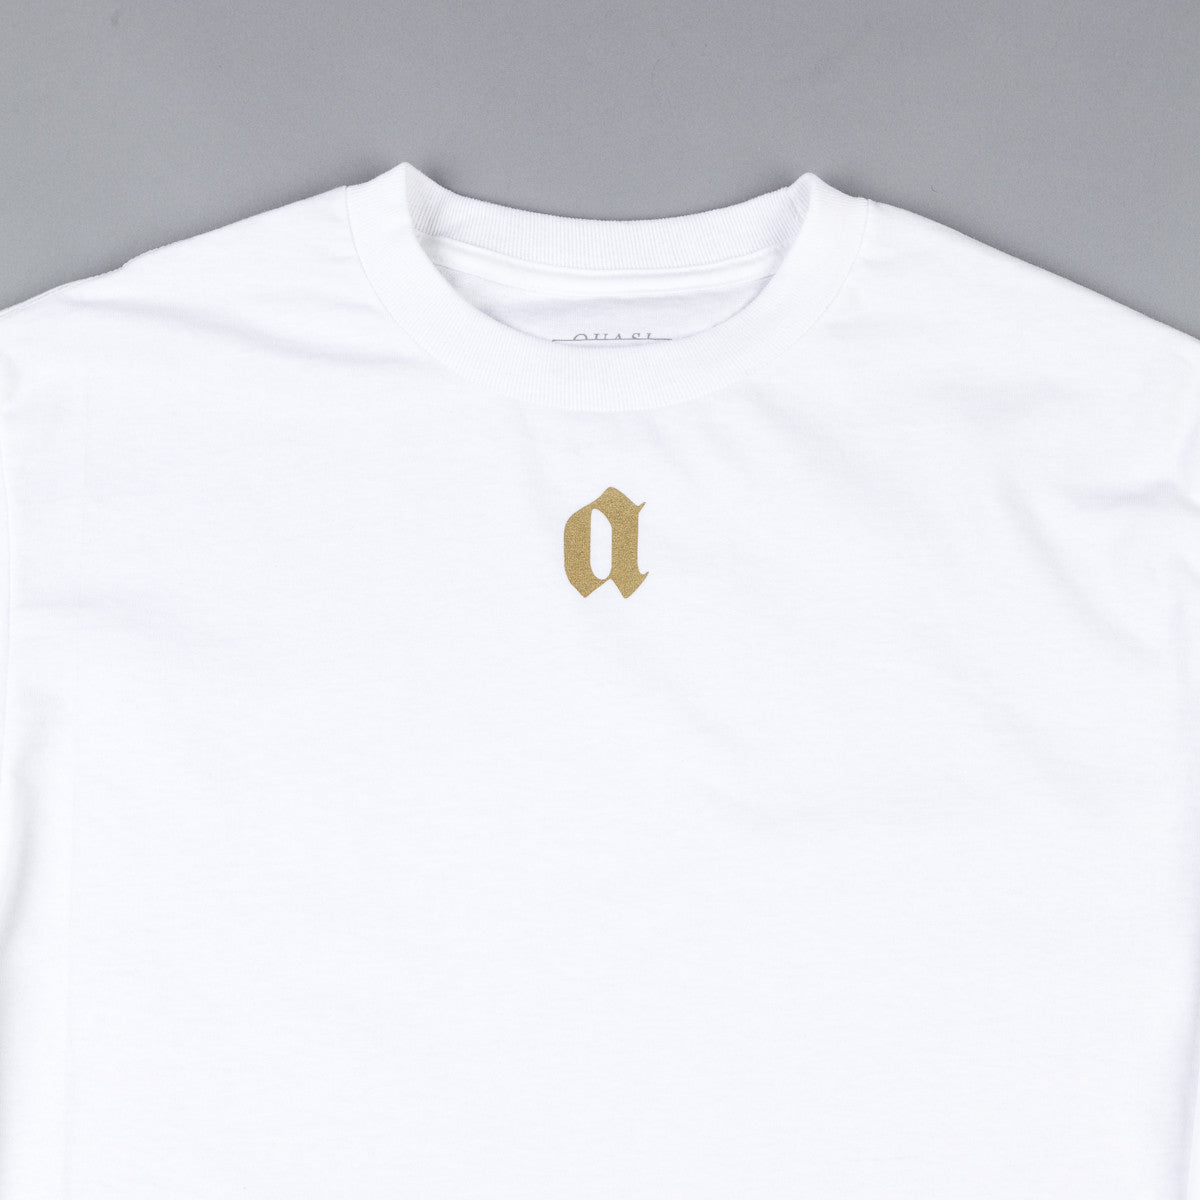 Quasi Coast 2 Coast Long Sleeve T-Shirt - White / Gold